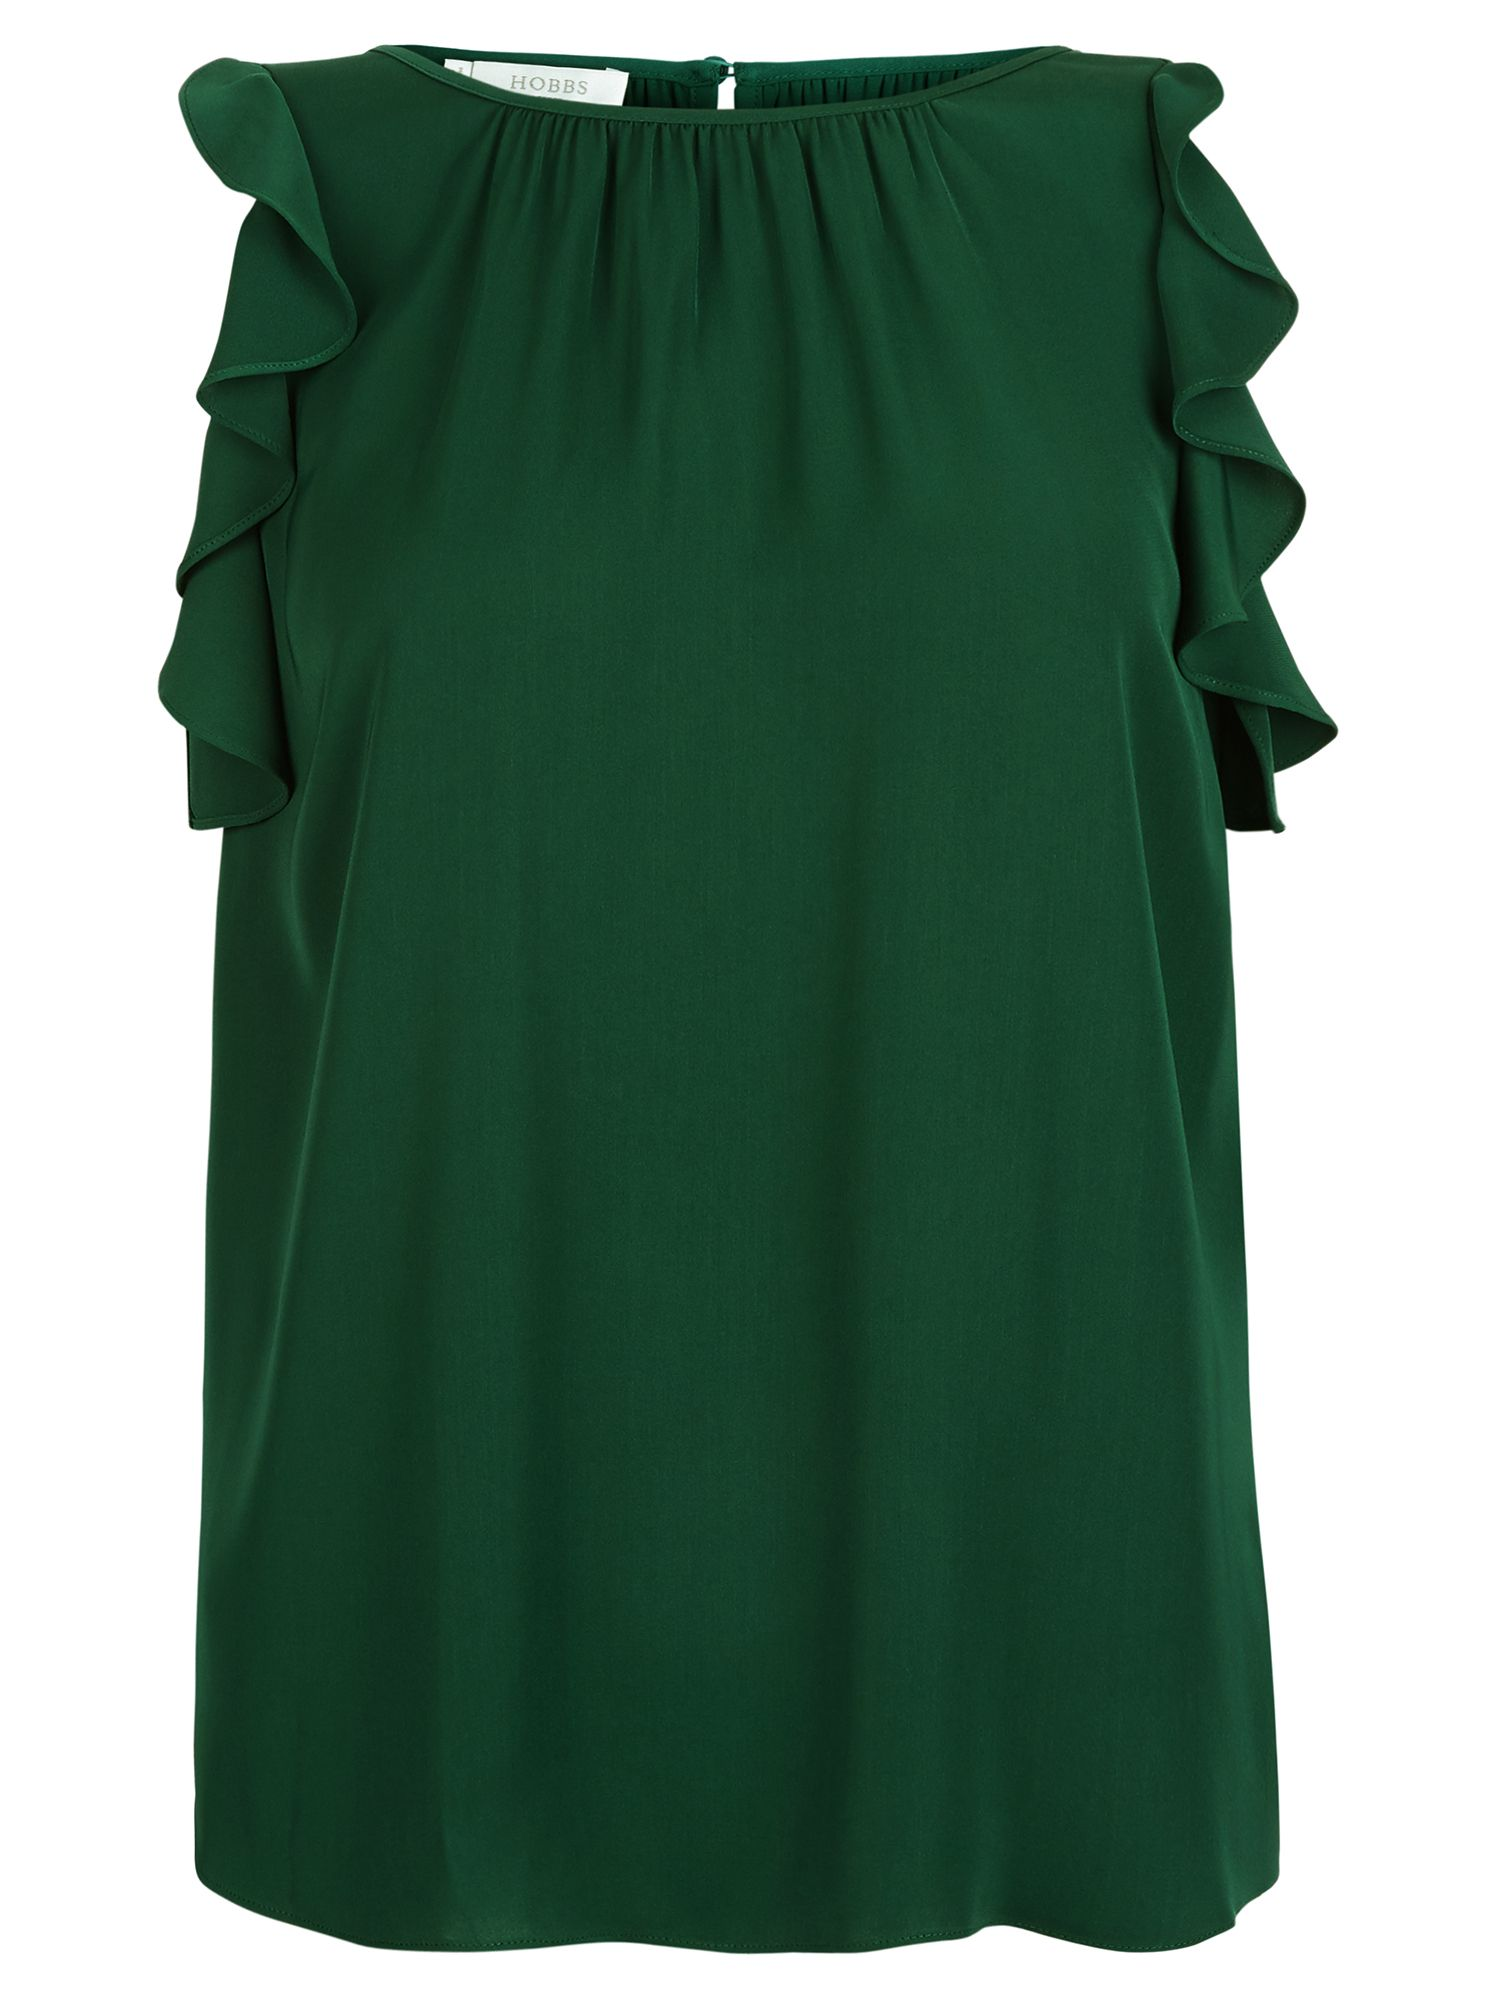 Hobbs Frances Top, Green